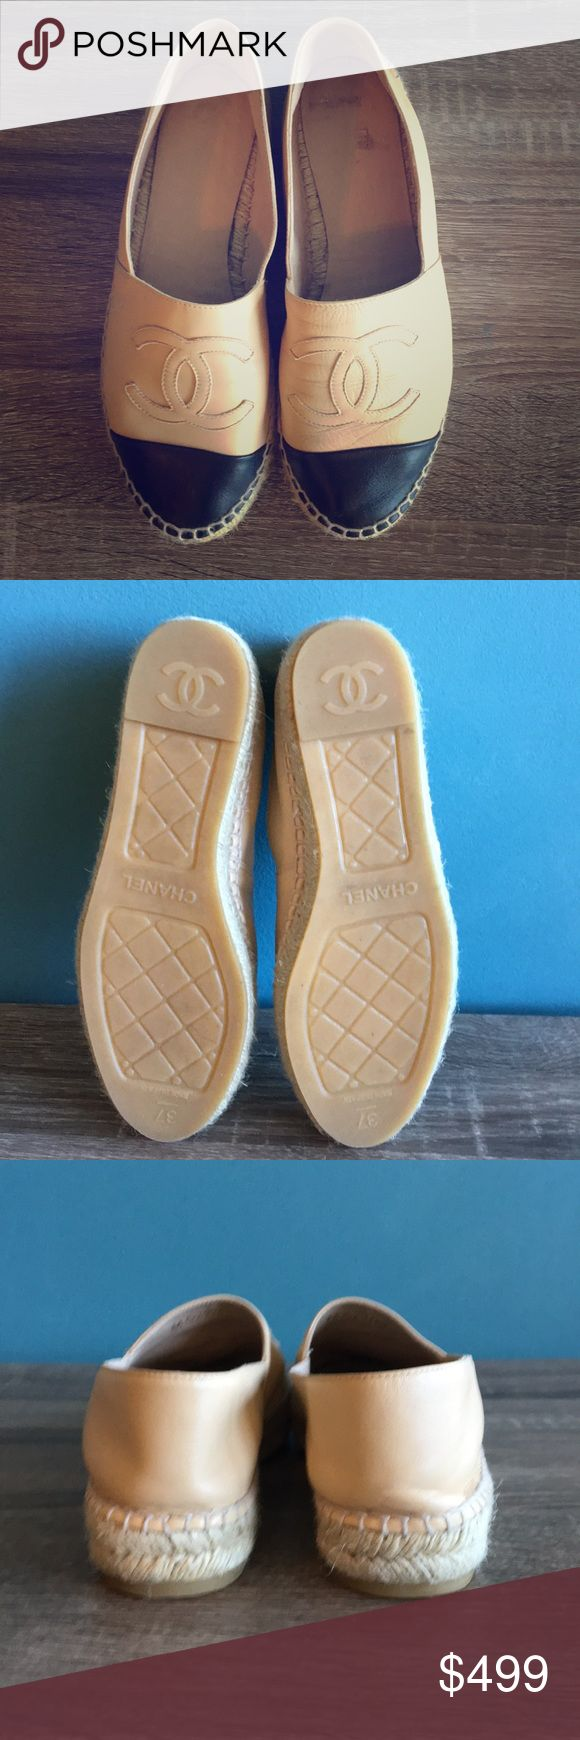 Chanel Lambskin Espadrilles Worn 3 times! Current season.  Still in stores and not on sale! Super comfortable and goes with everything! Make me an offer! CHANEL Shoes Espadrilles